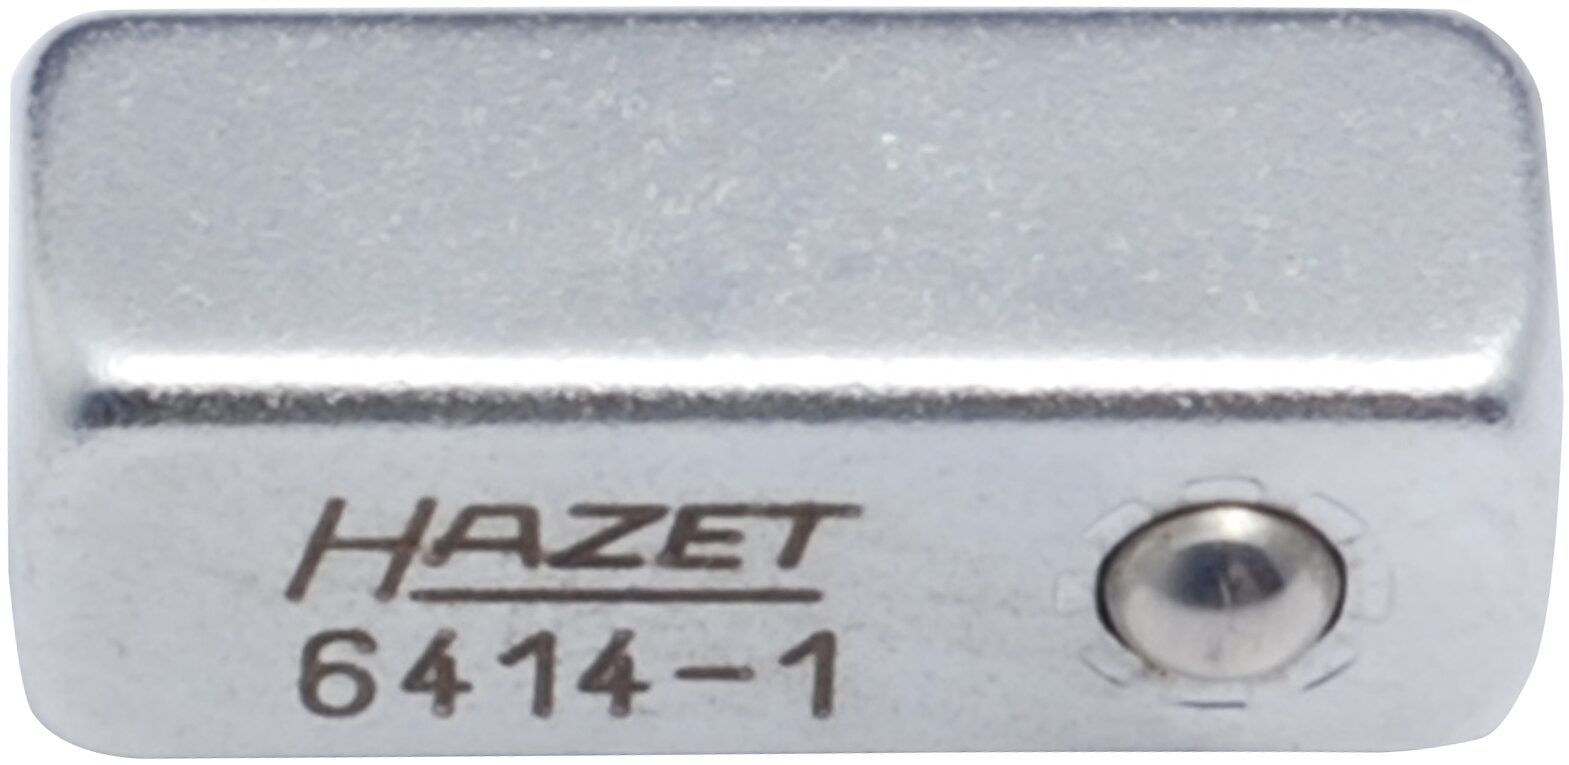 HAZET Push-thru Square Drive, torque wrench 6414-1 at a discount — buy now!